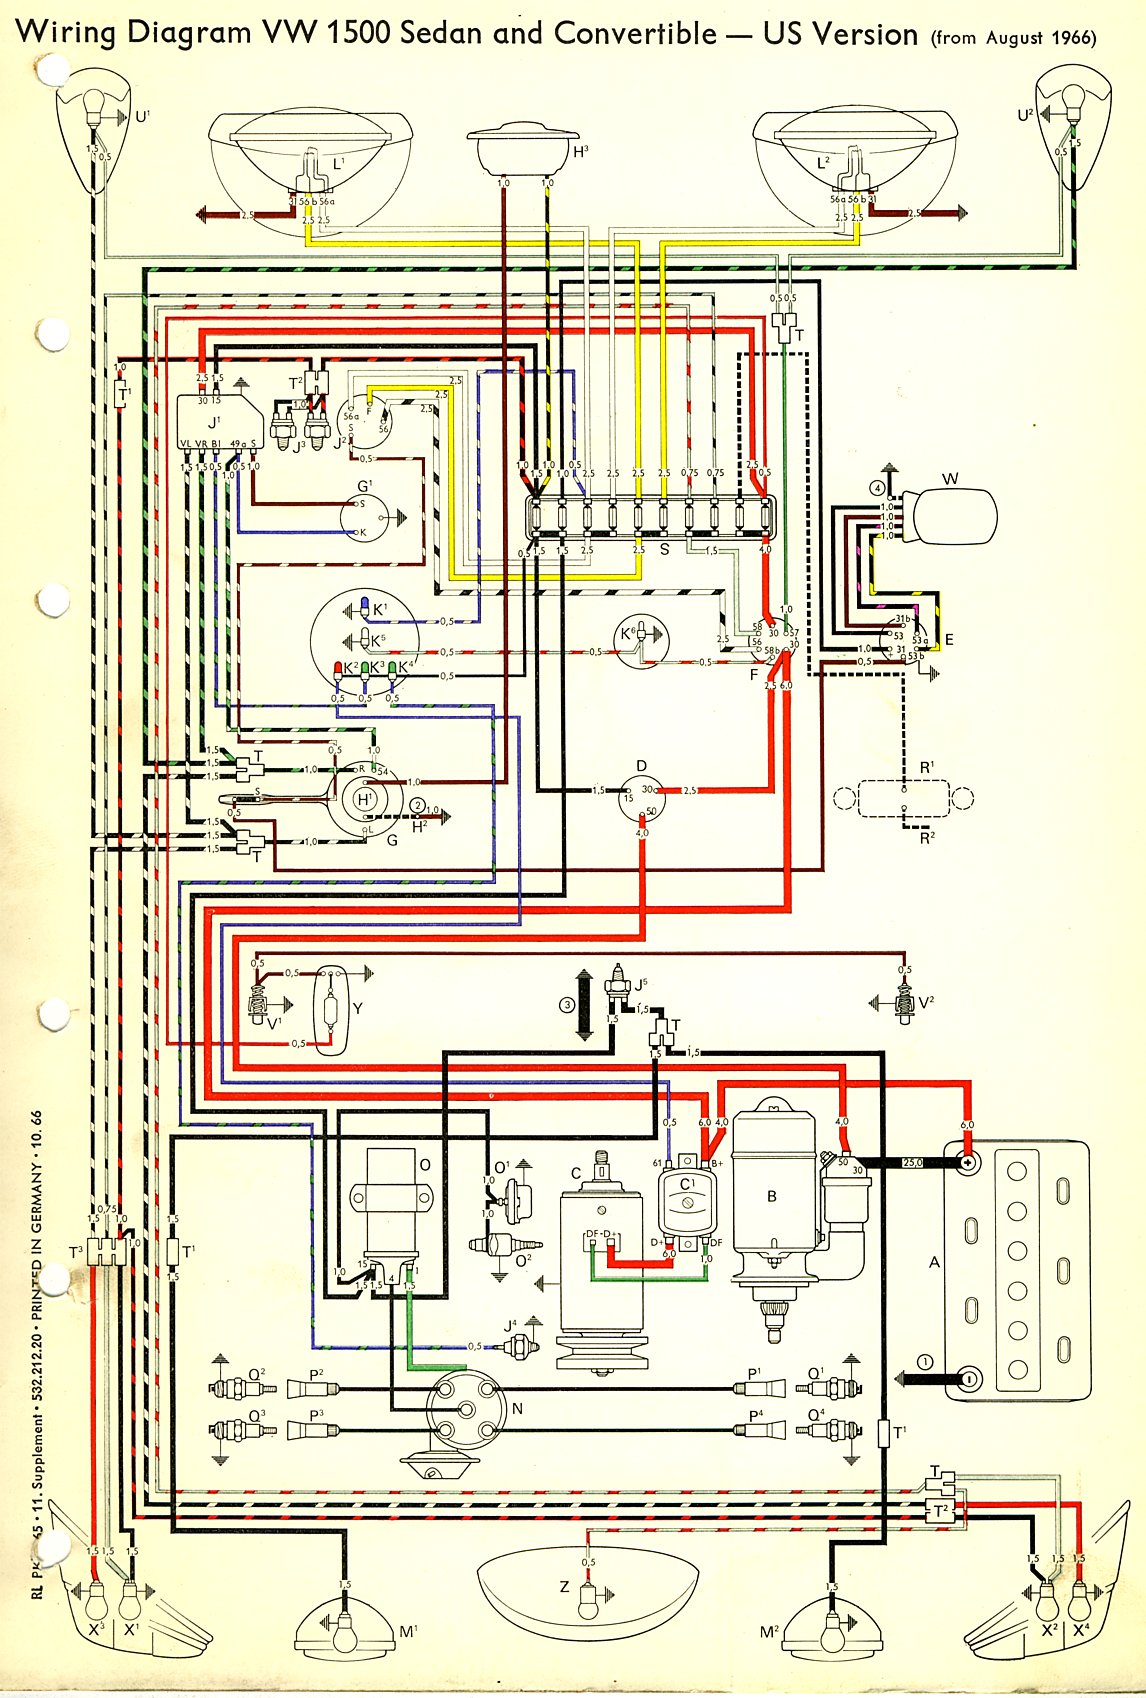 bug_67_USA thesamba com type 1 wiring diagrams 77 VW Van Wiring Diagram at readyjetset.co